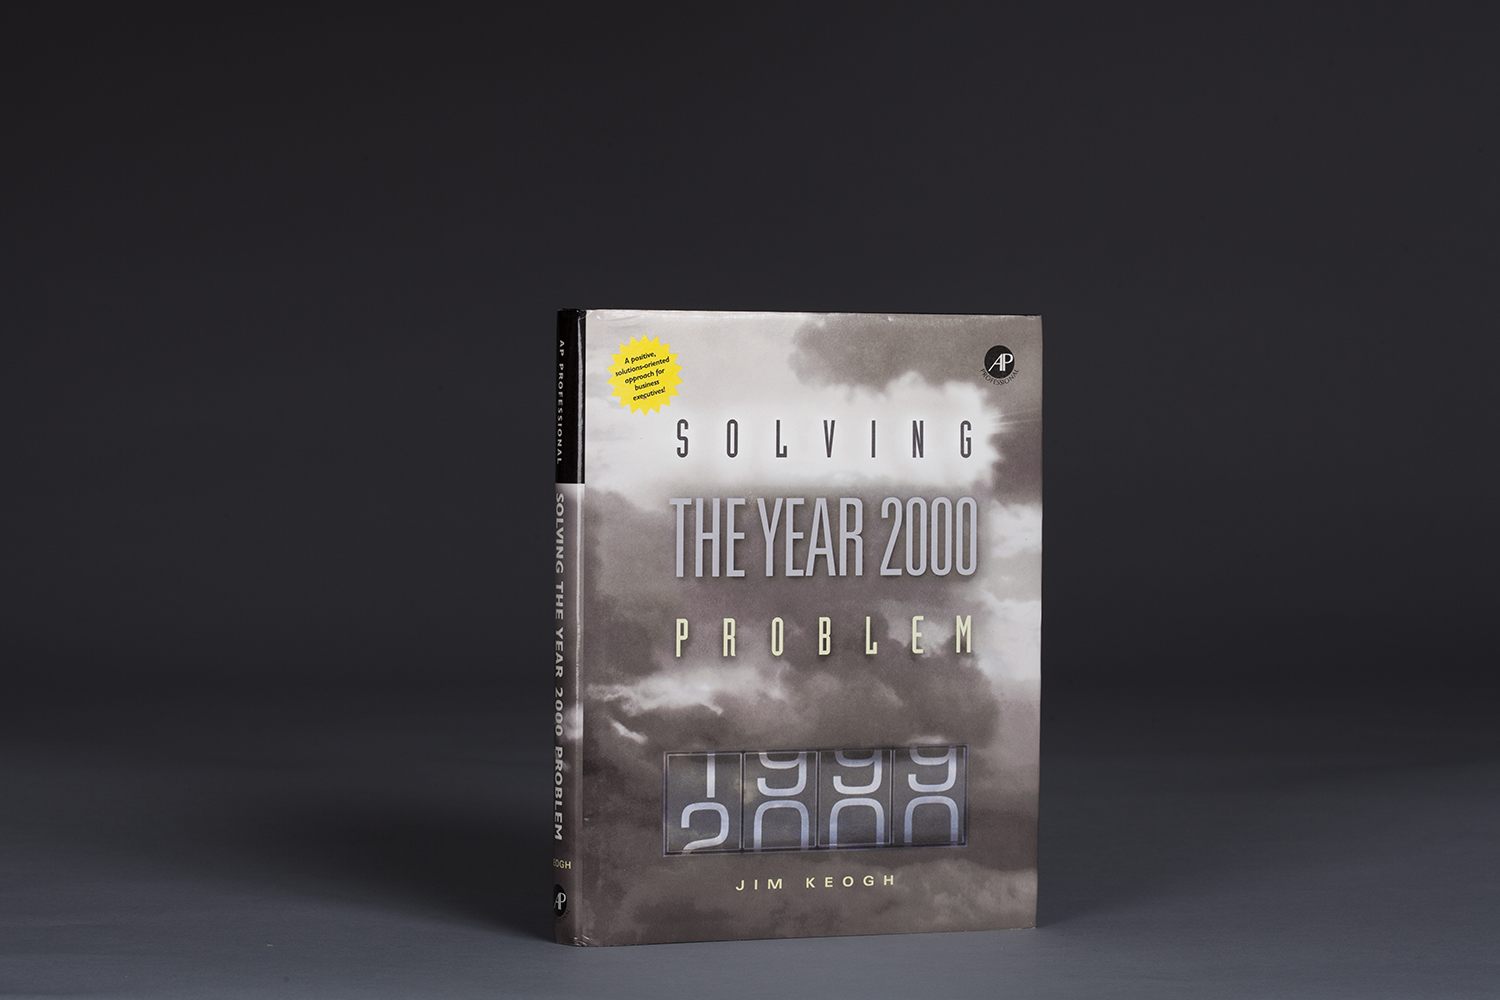 Solving the Year 2000 Problem - 9982 Cover.jpg